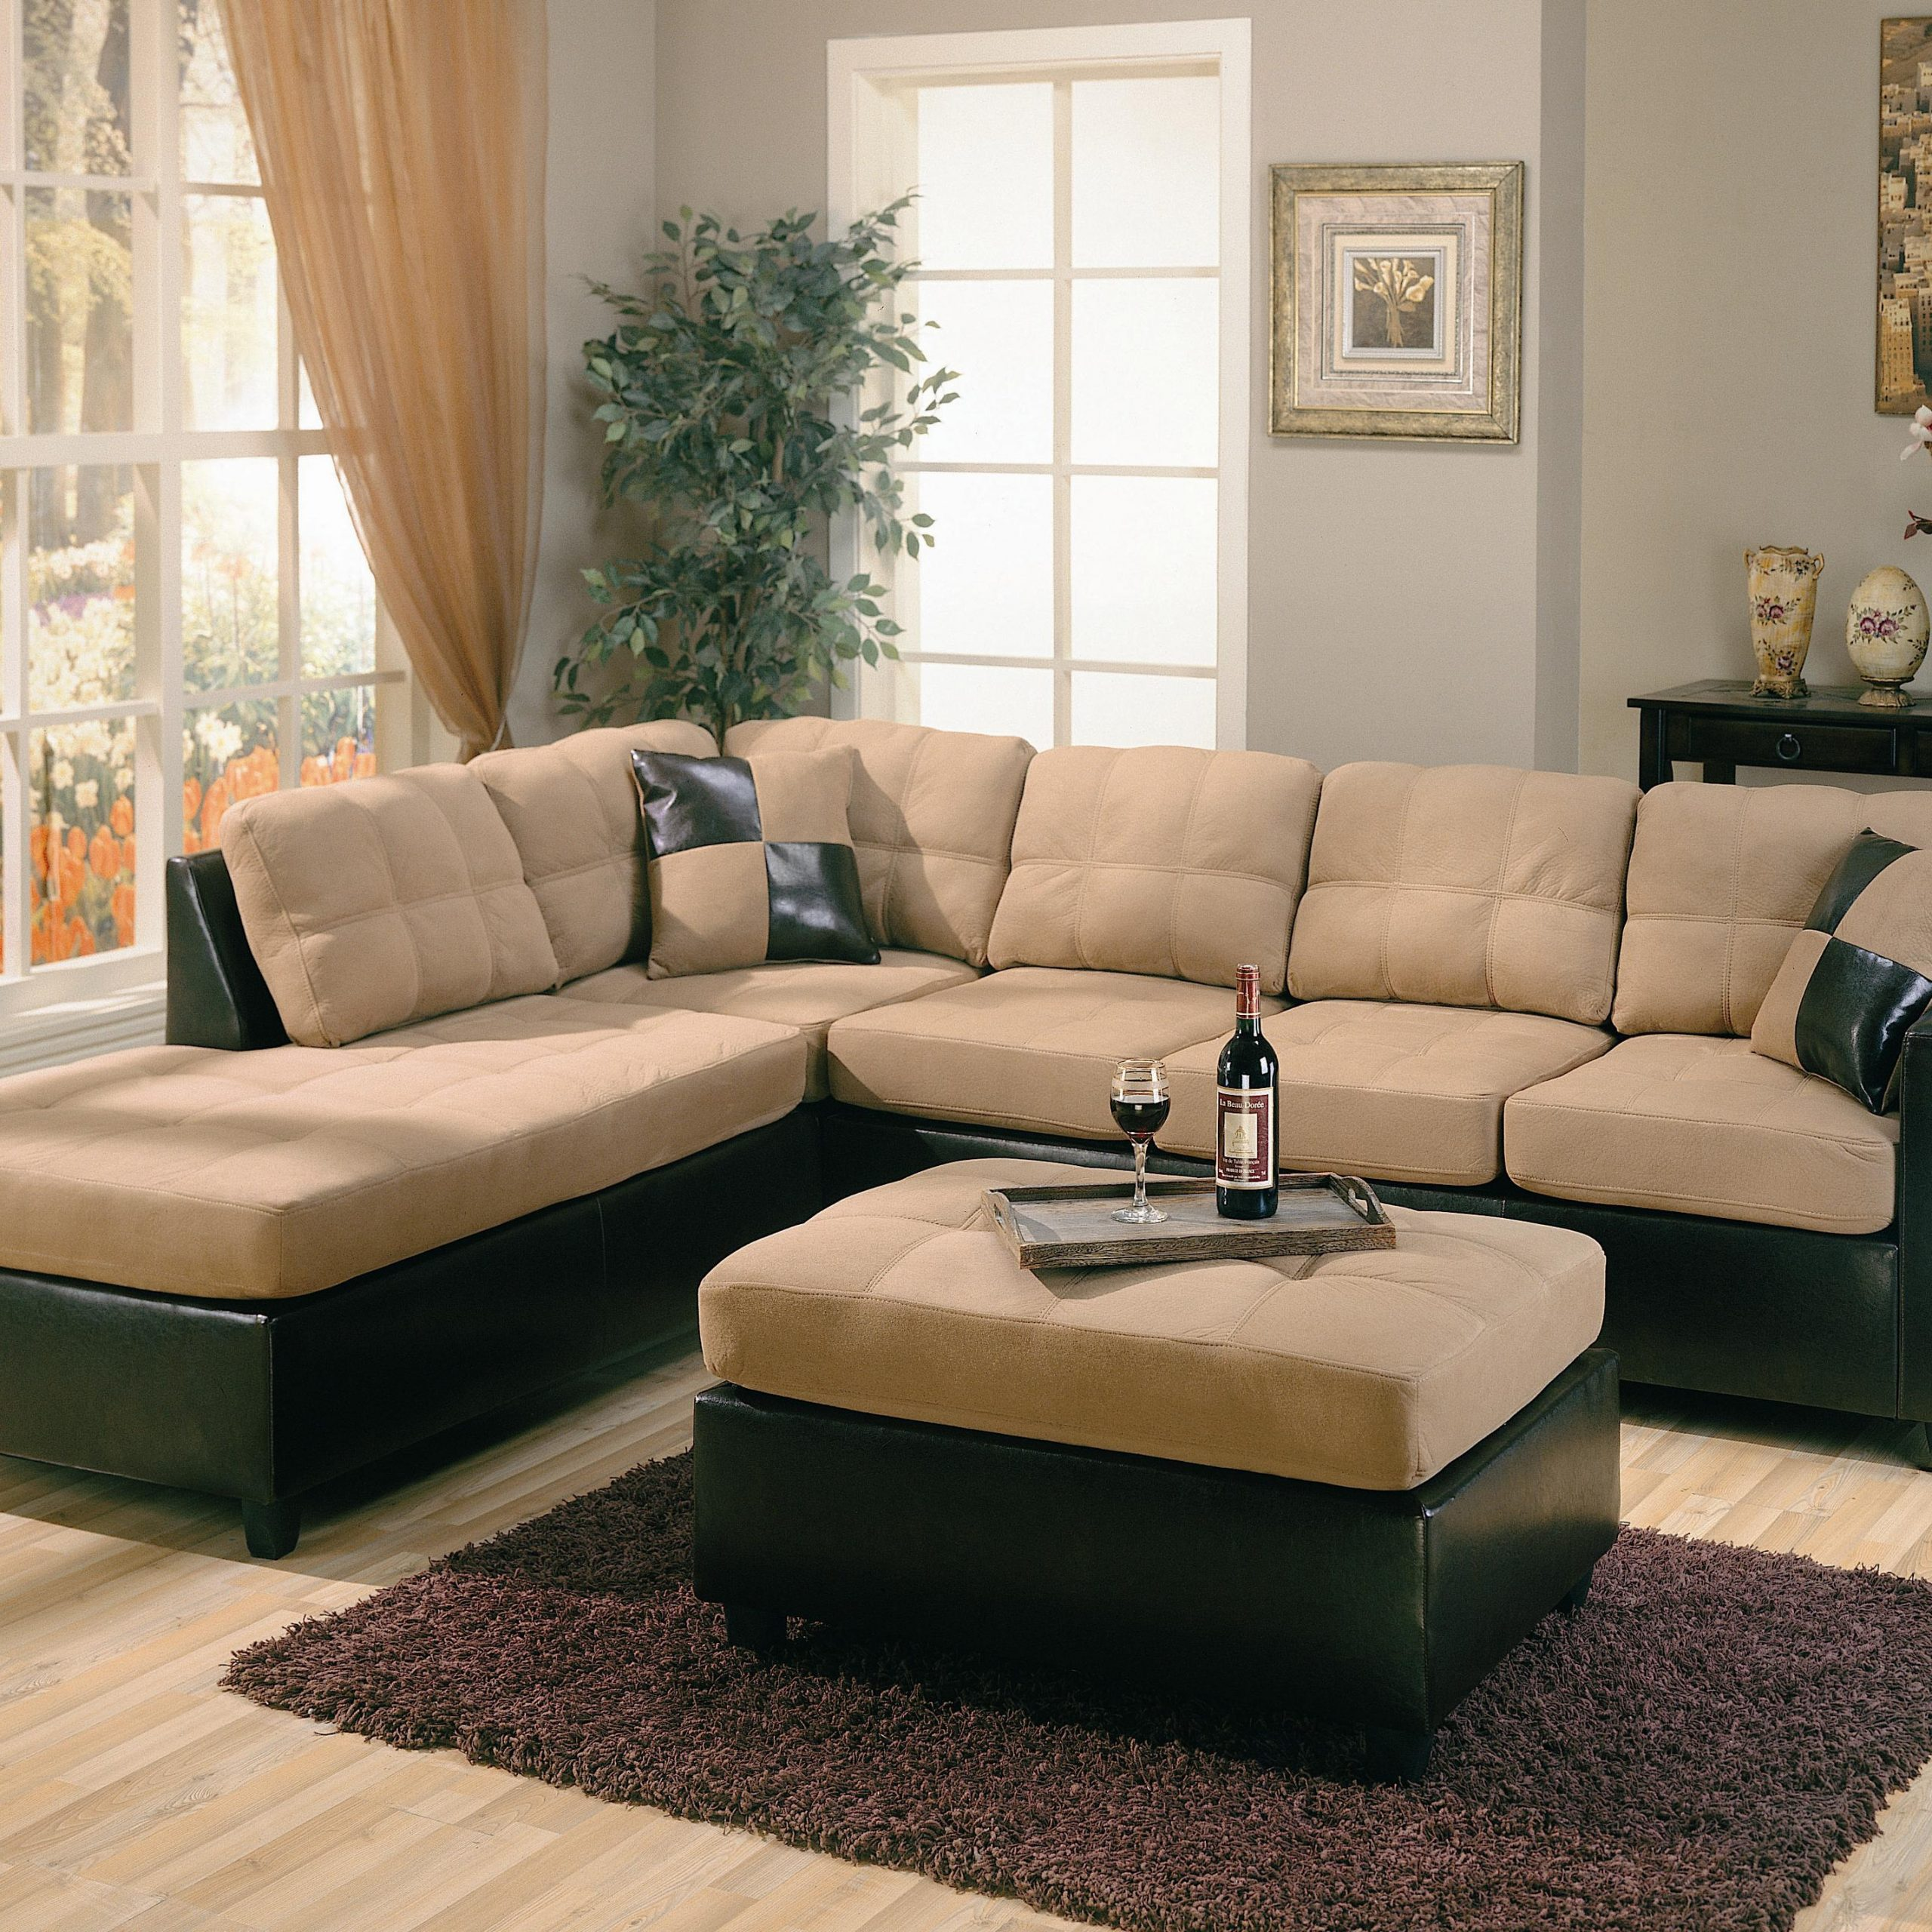 Page Title With Latest Bonded Leather All In One Sectional Sofas With Ottoman And 2 Pillows Brown (View 8 of 25)